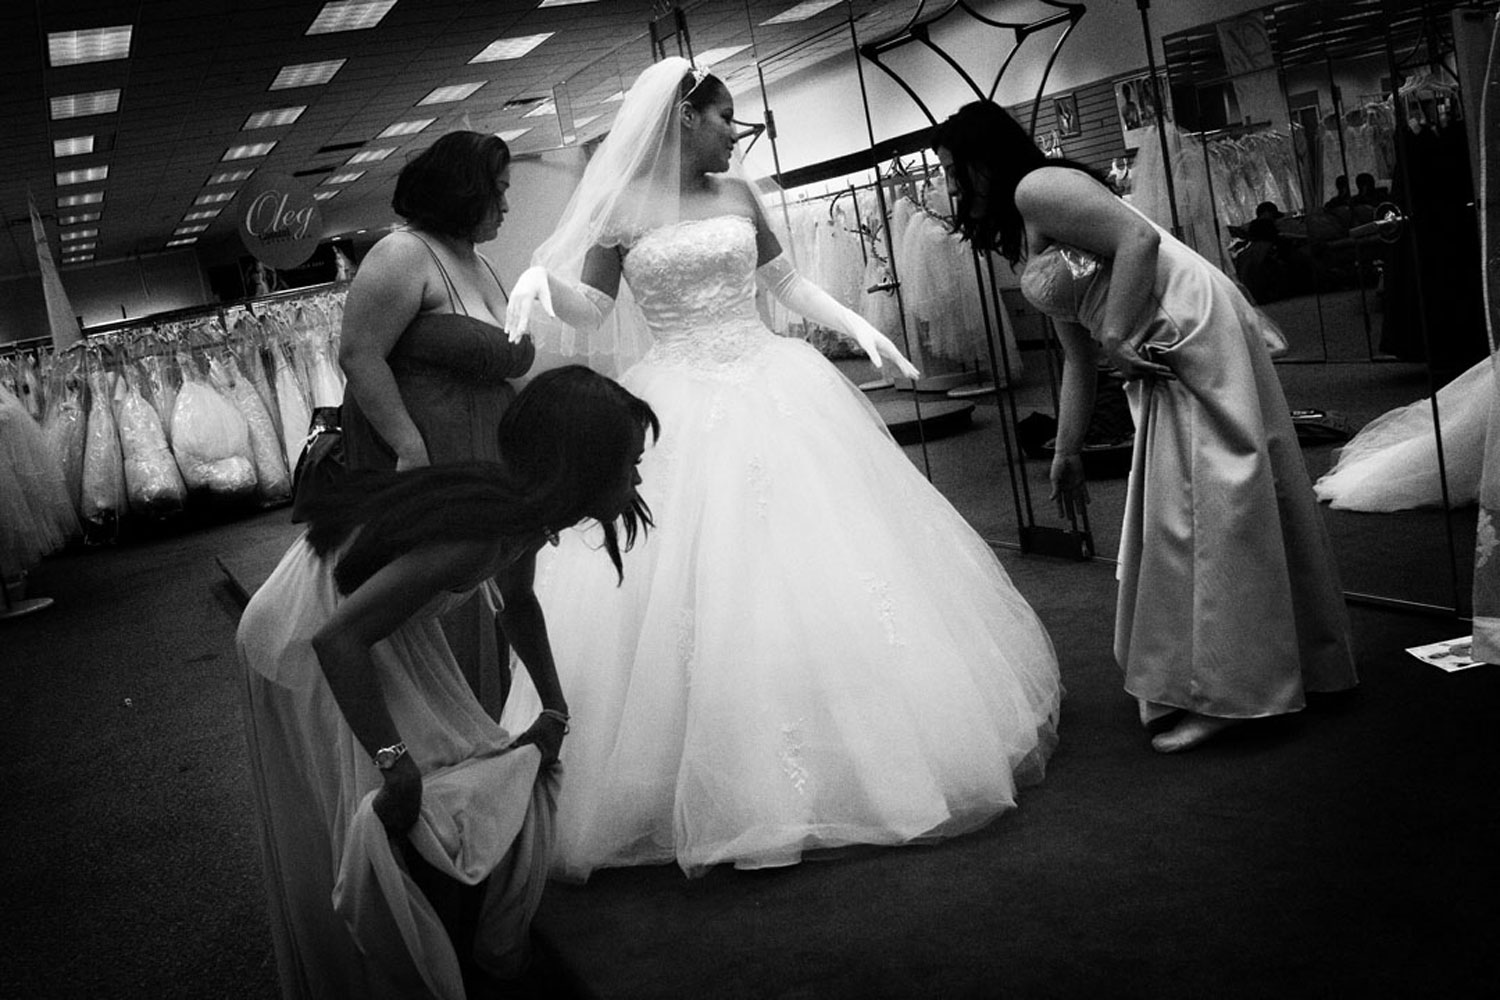 M. tries on wedding dresses with her chosen sisters: J., K. and C., in anticipation of her wedding to her fiancee. May 2007.